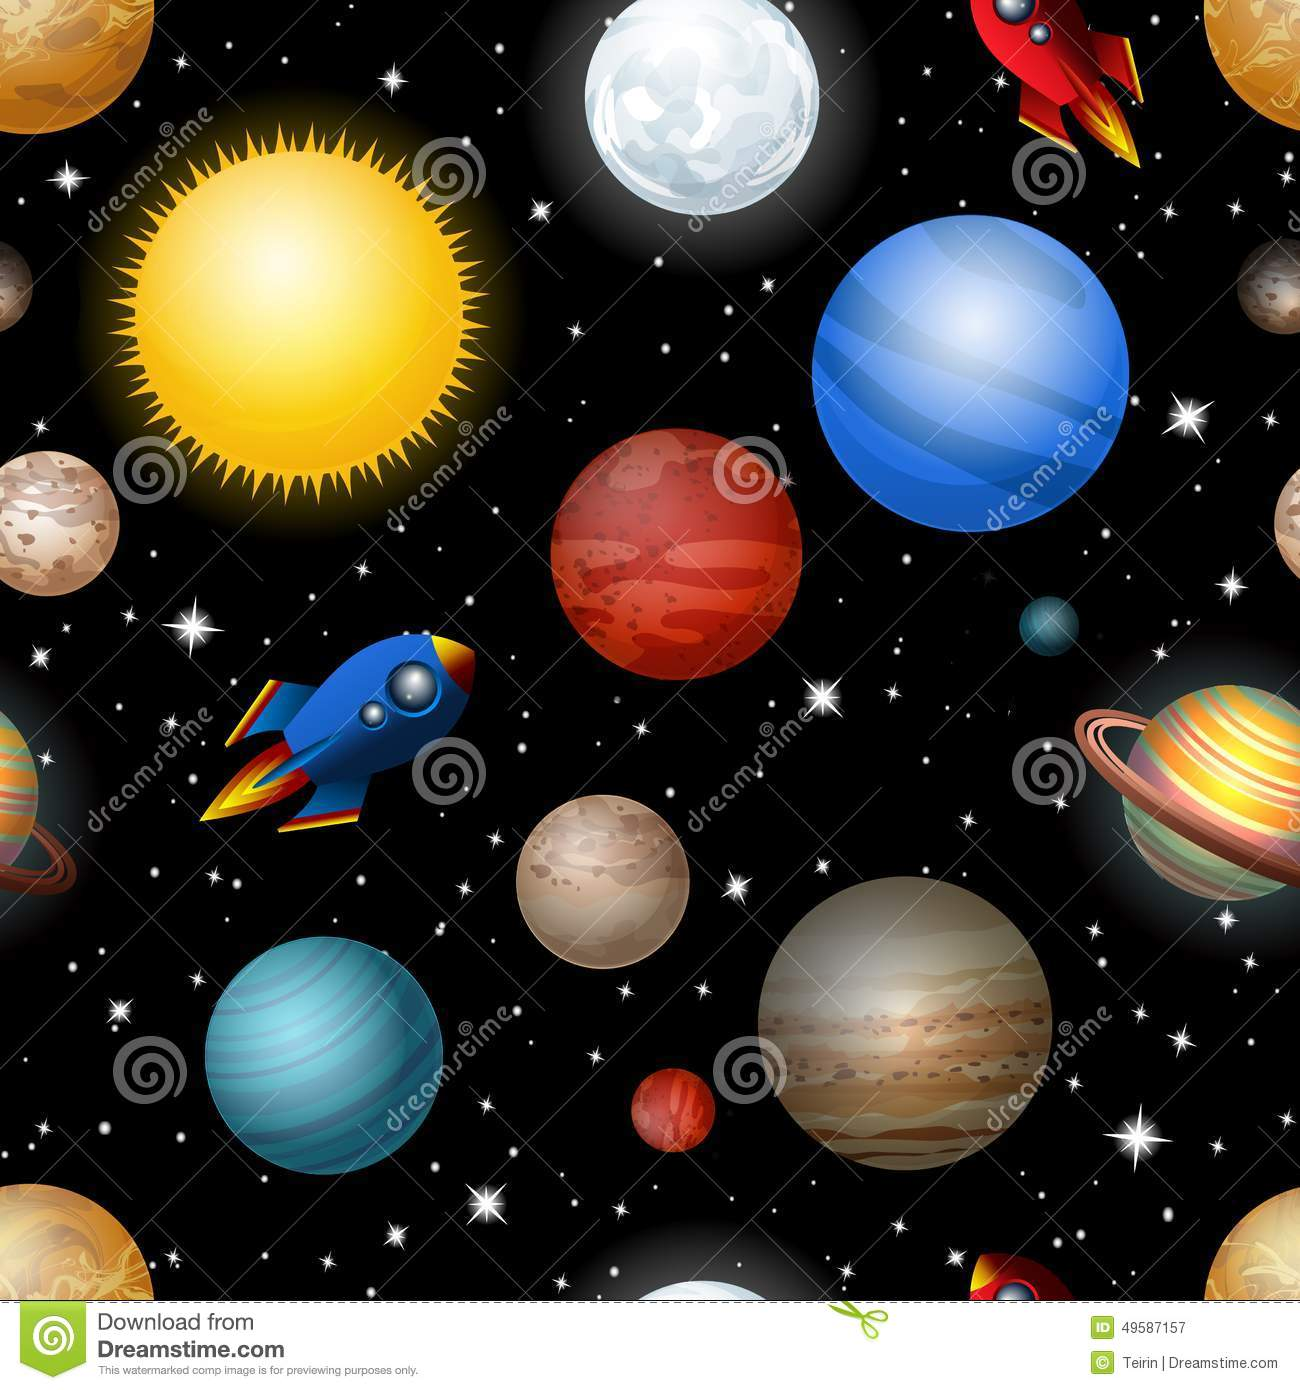 Solar System 3d Wallpaper Seamless Pattern With Planets And Rockets Stock Vector